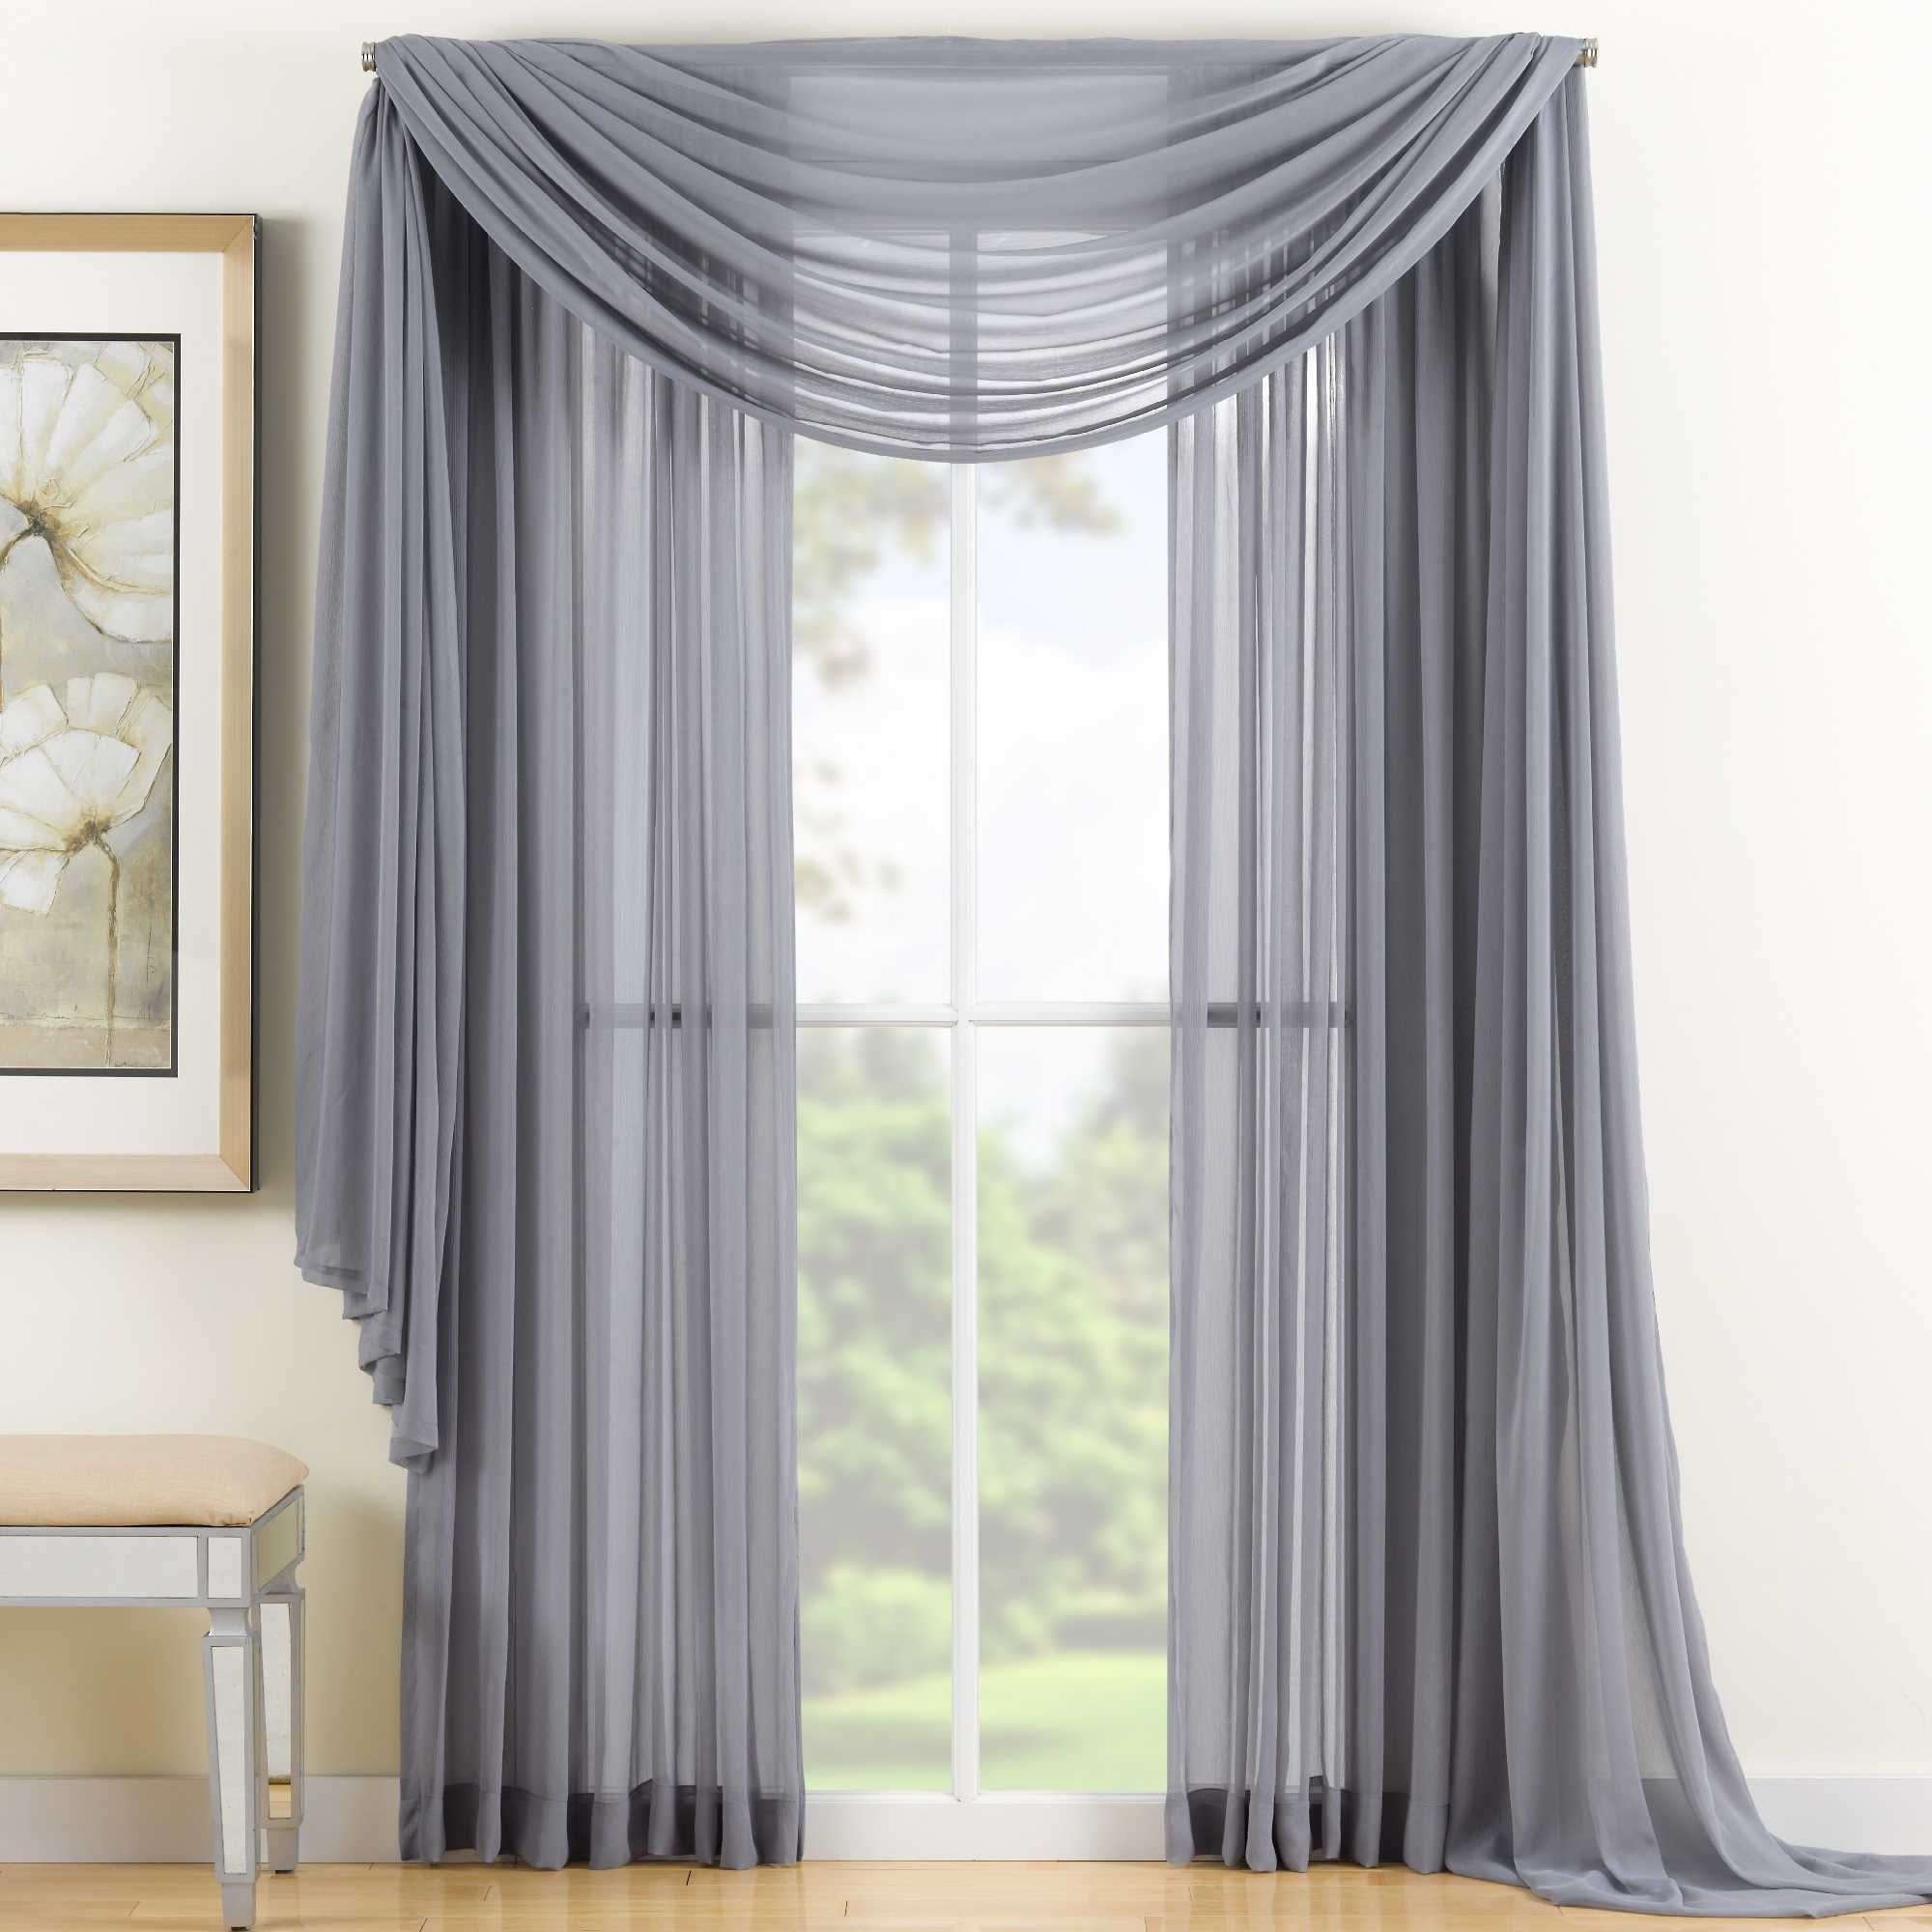 Curtain ideas Reverie Sheer Window Scarf Valance